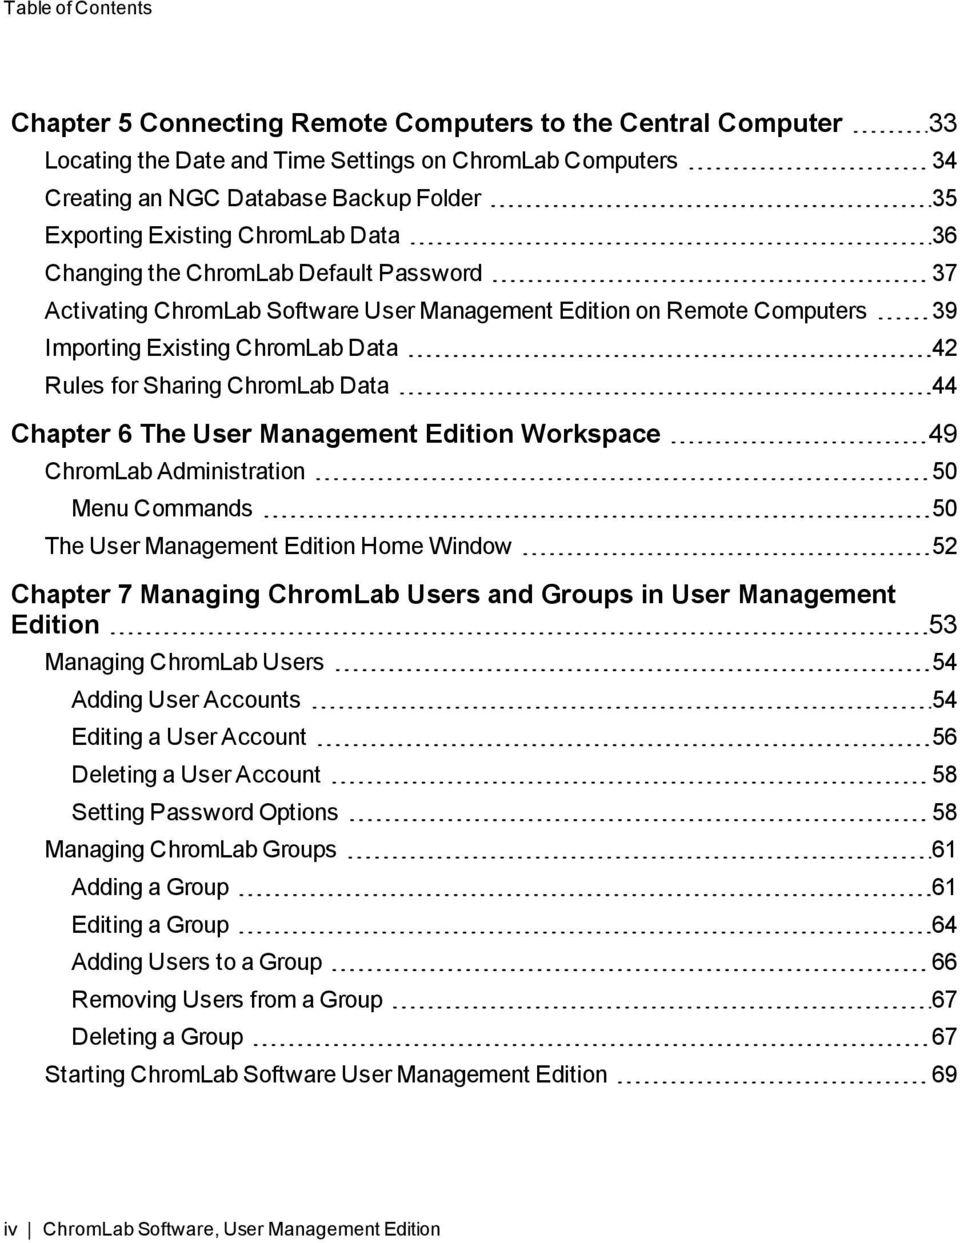 ChromLab Data 44 Chapter 6 The User Management Edition Workspace 49 ChromLab Administration 50 Menu Commands 50 The User Management Edition Home Window 52 Chapter 7 Managing ChromLab Users and Groups